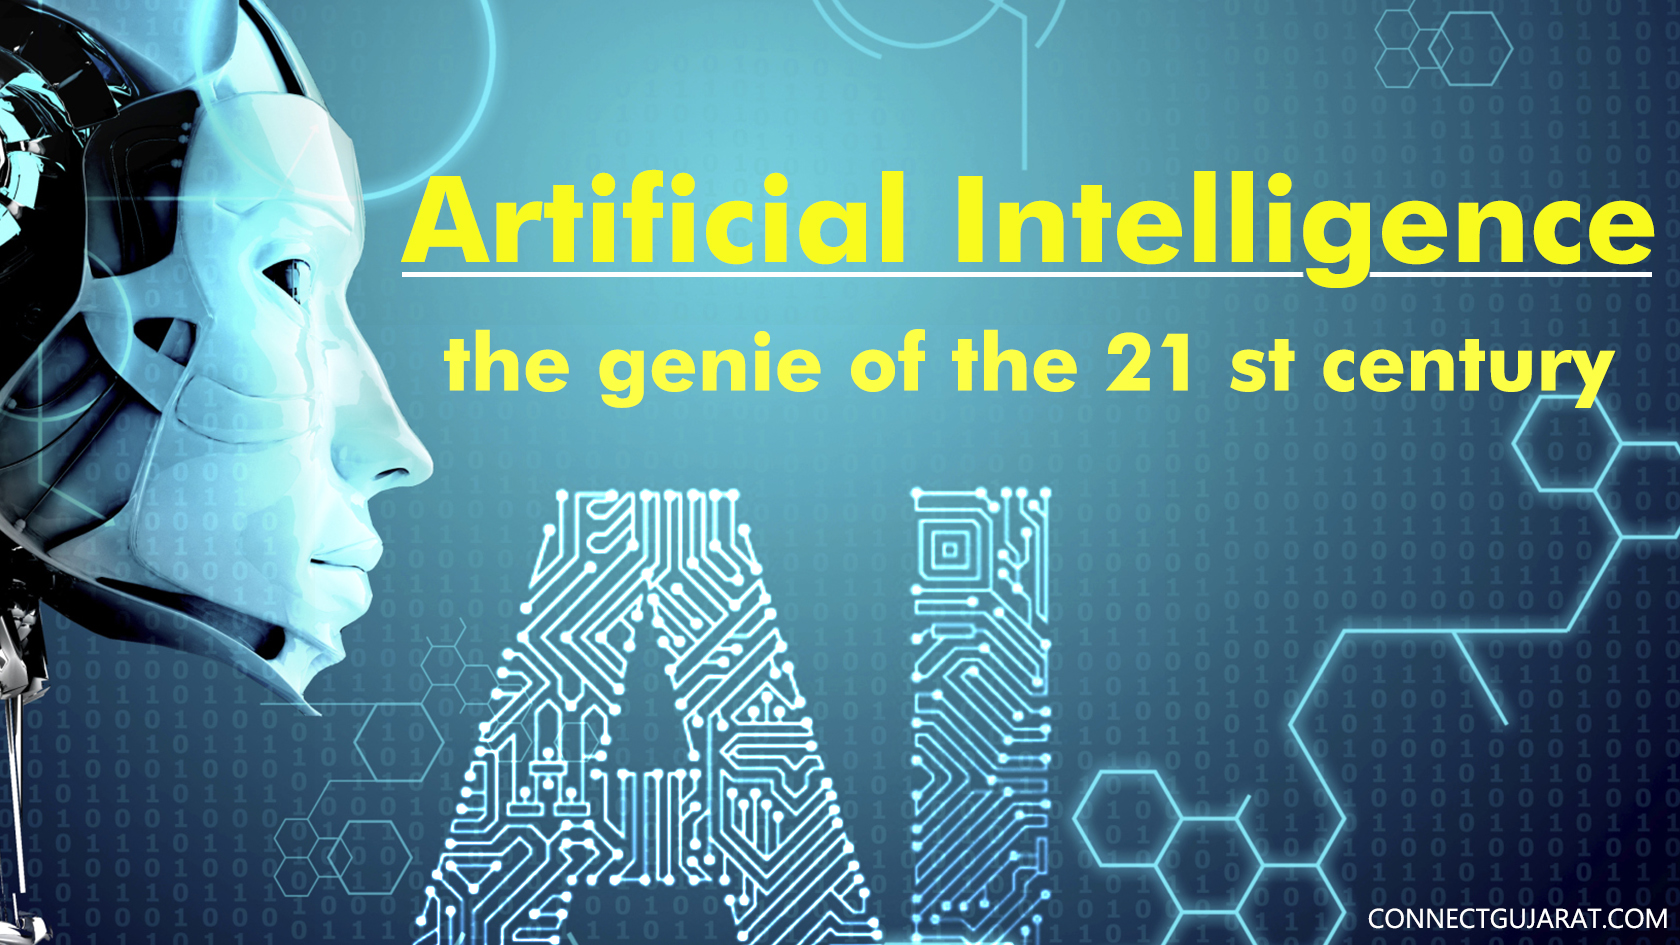 AI, the genie of the 21st century